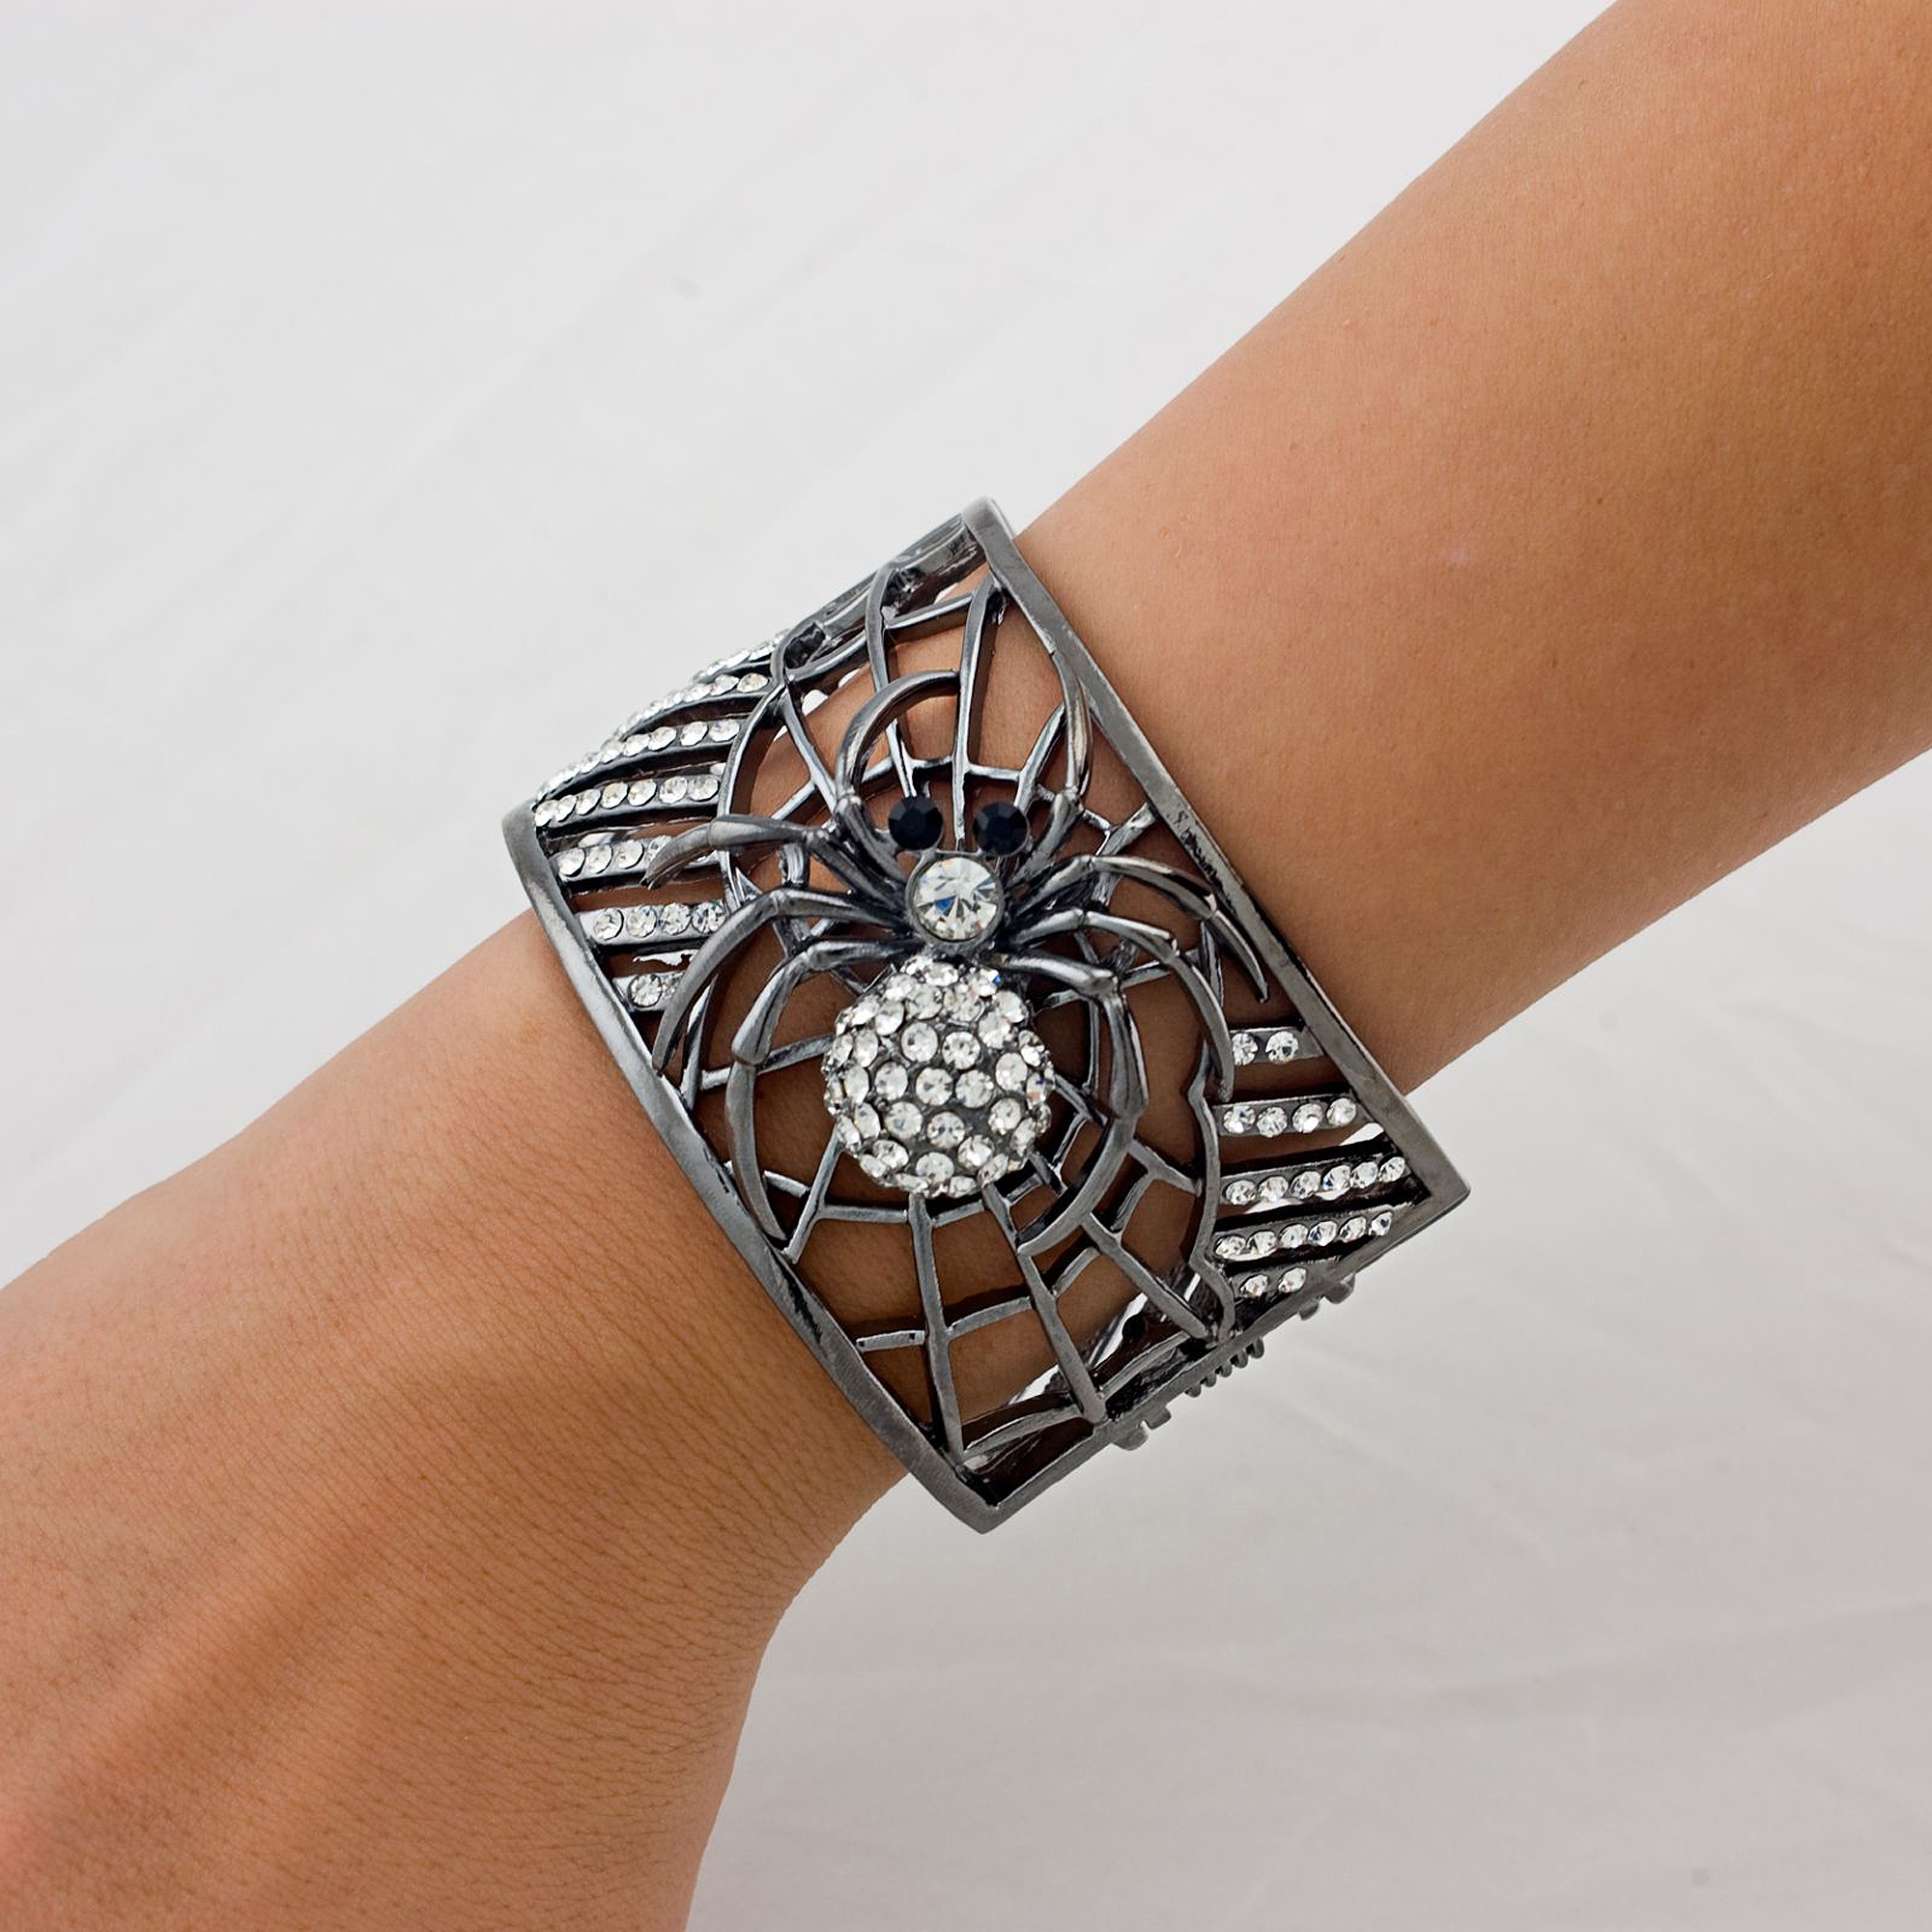 Sunnywood Rhinestone Spider Bracelet Adult Halloween Costume Accessory